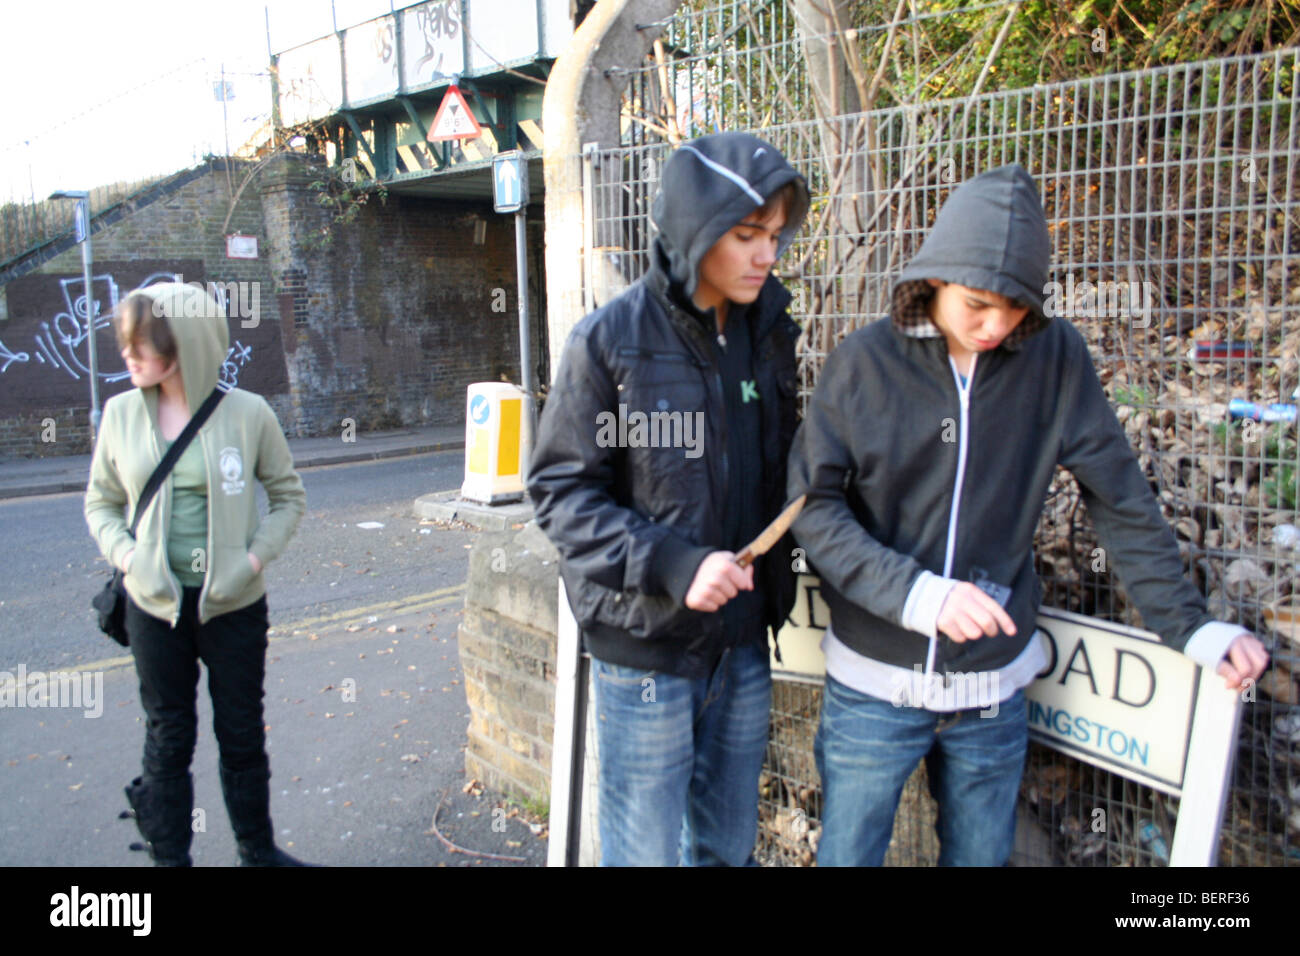 Street Fight Attack Being Mugged Stock Photo 26332298 Alamy